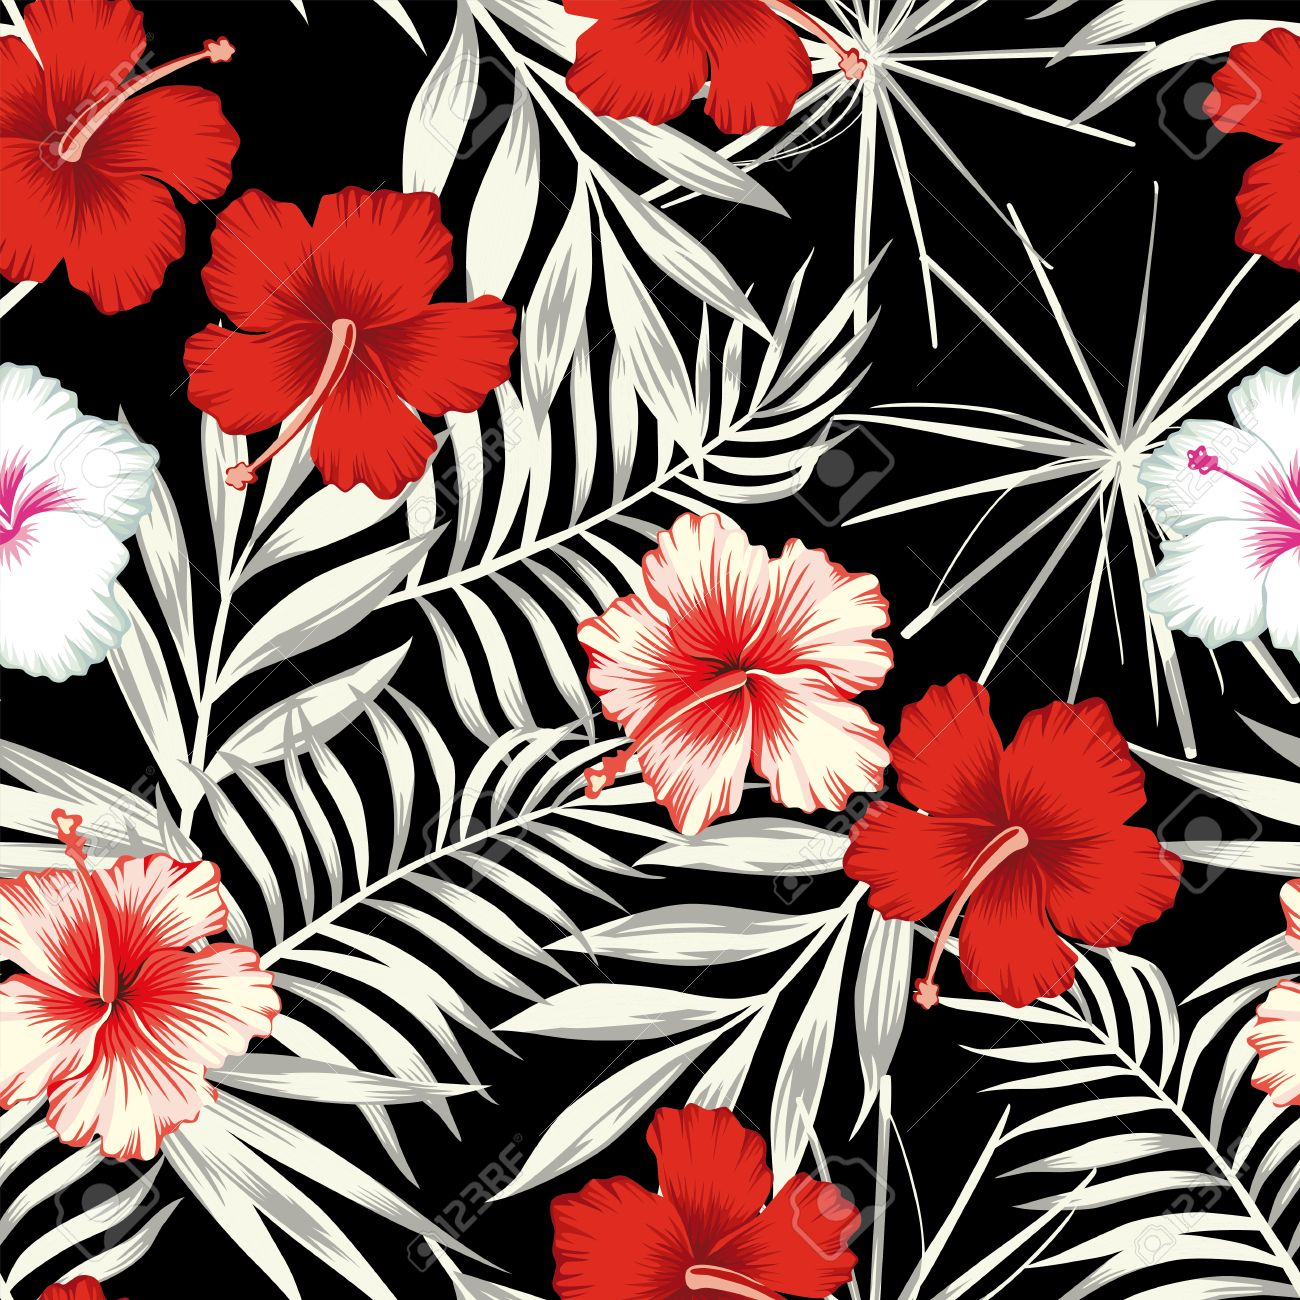 red white hibiscus flowers on a black and white background of royalty free cliparts vectors and stock illustration image 81230192 red white hibiscus flowers on a black and white background of